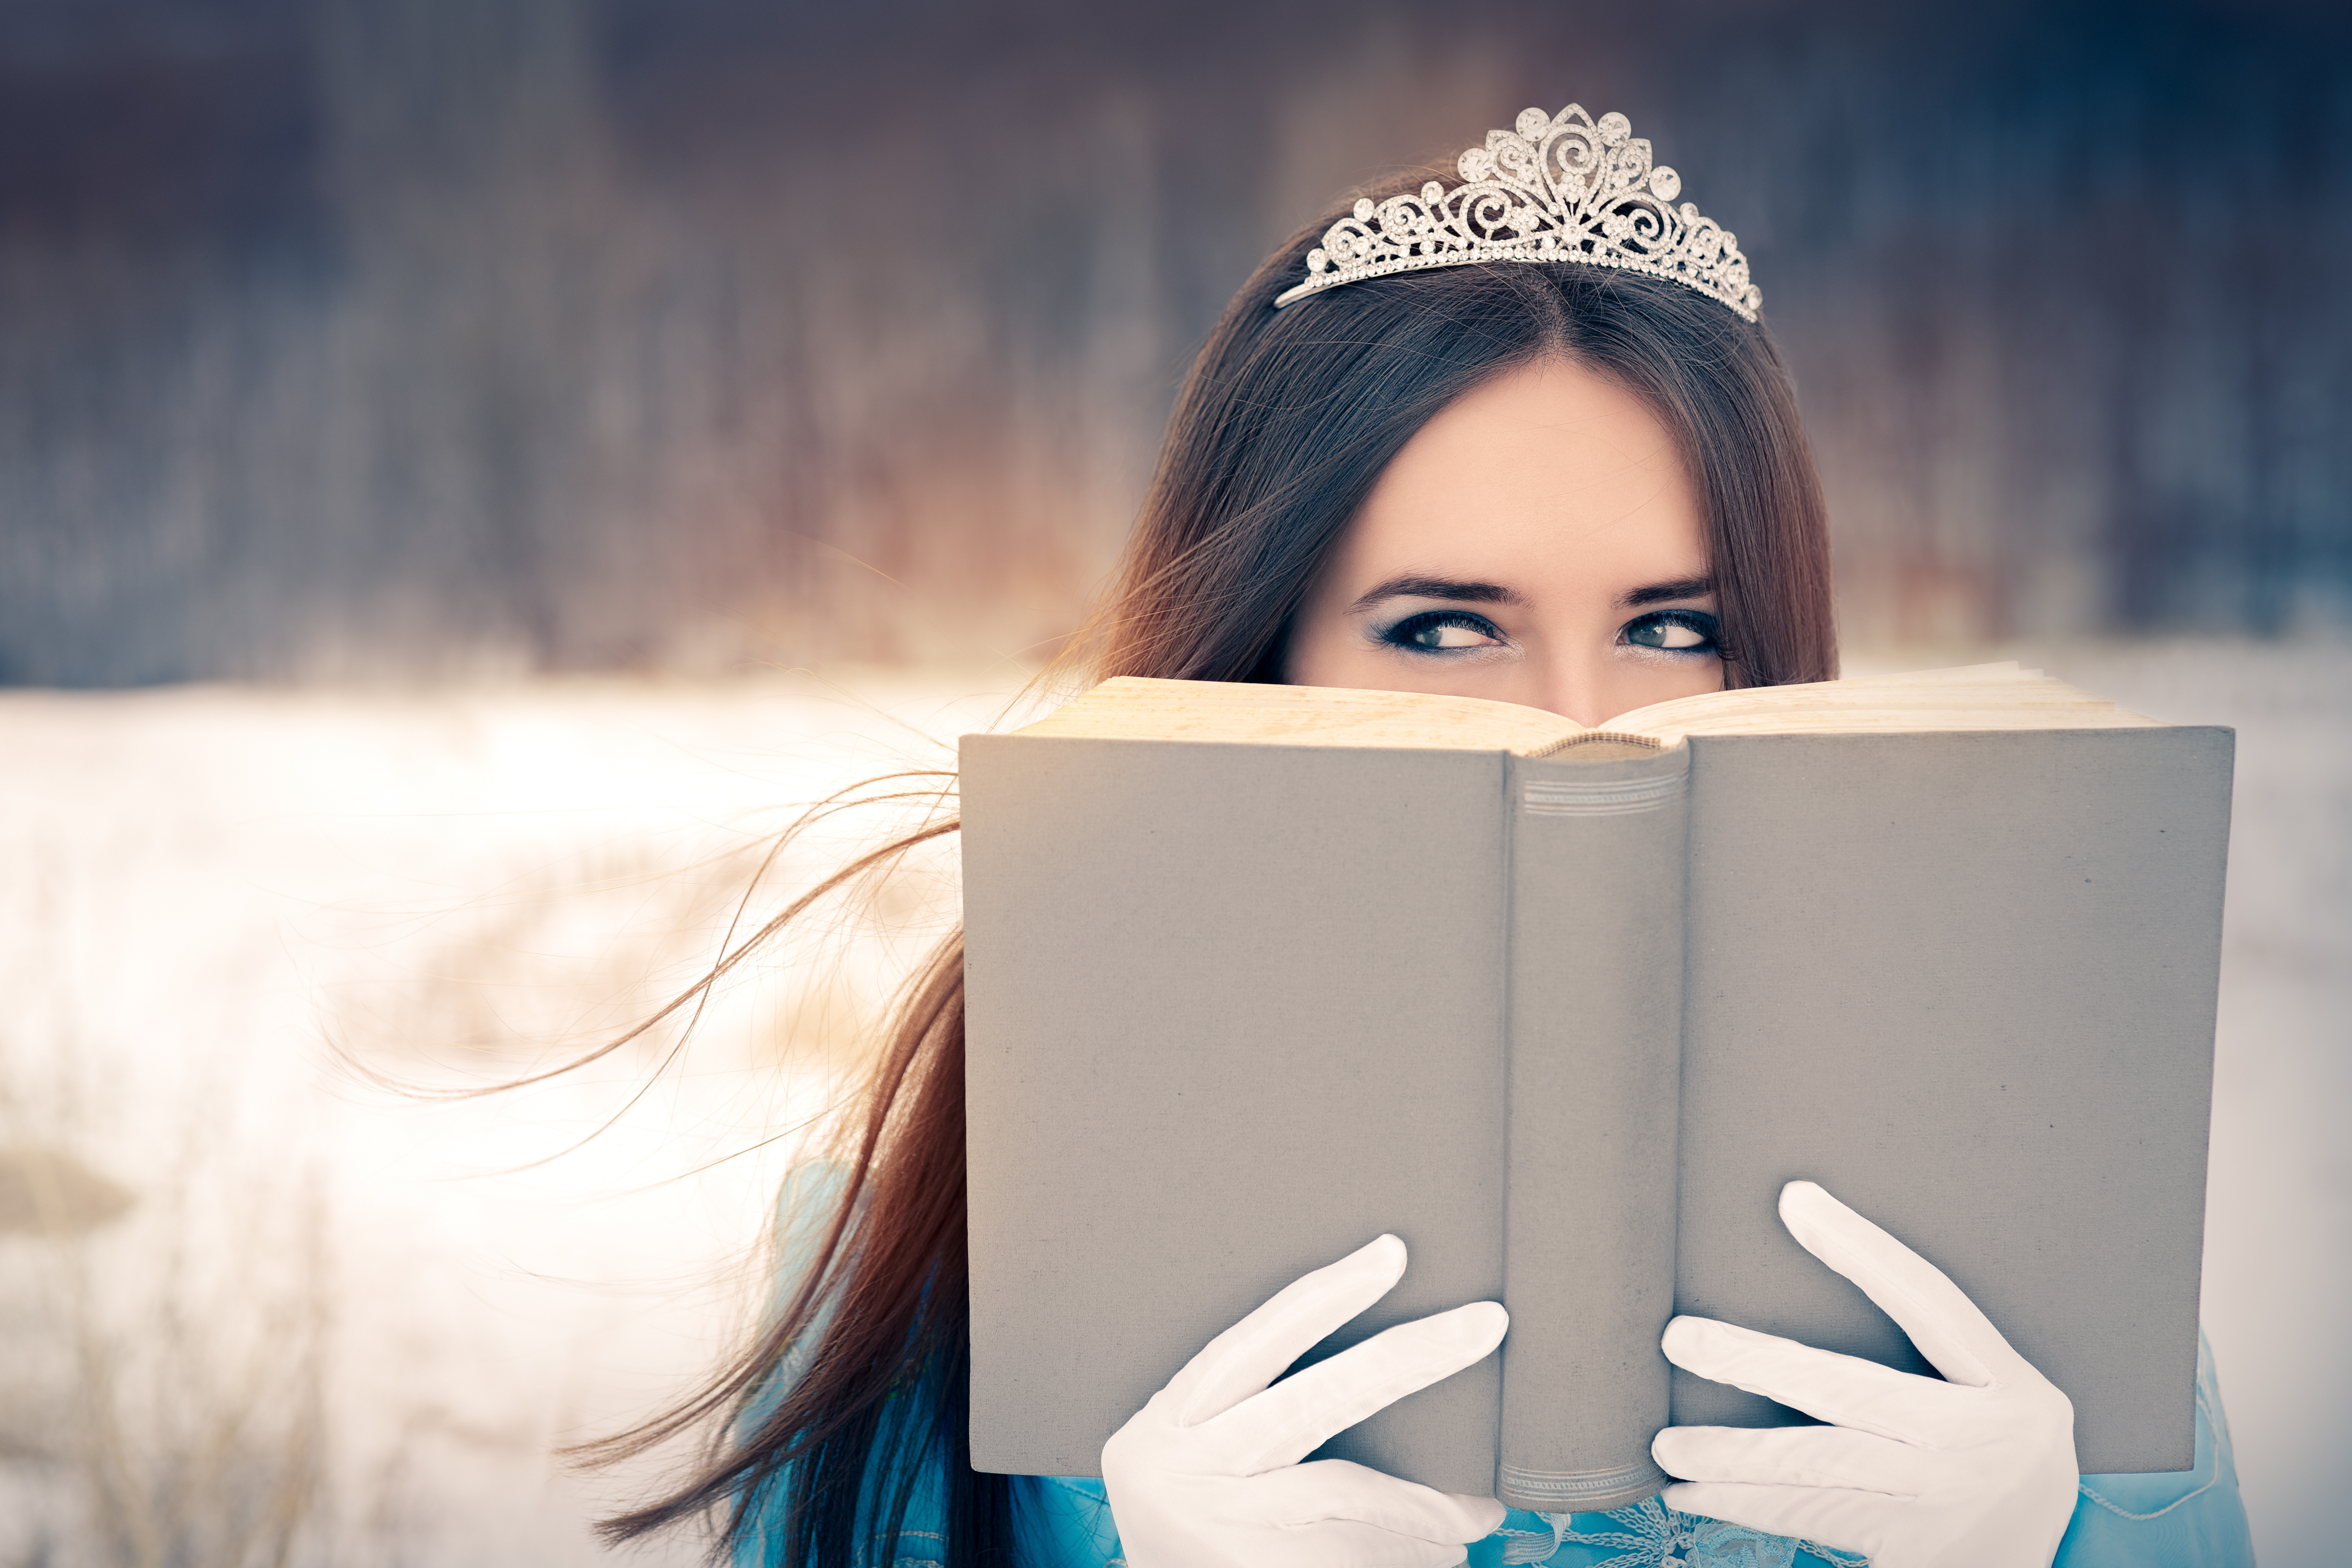 49632503 - beautiful snow queen reading a book